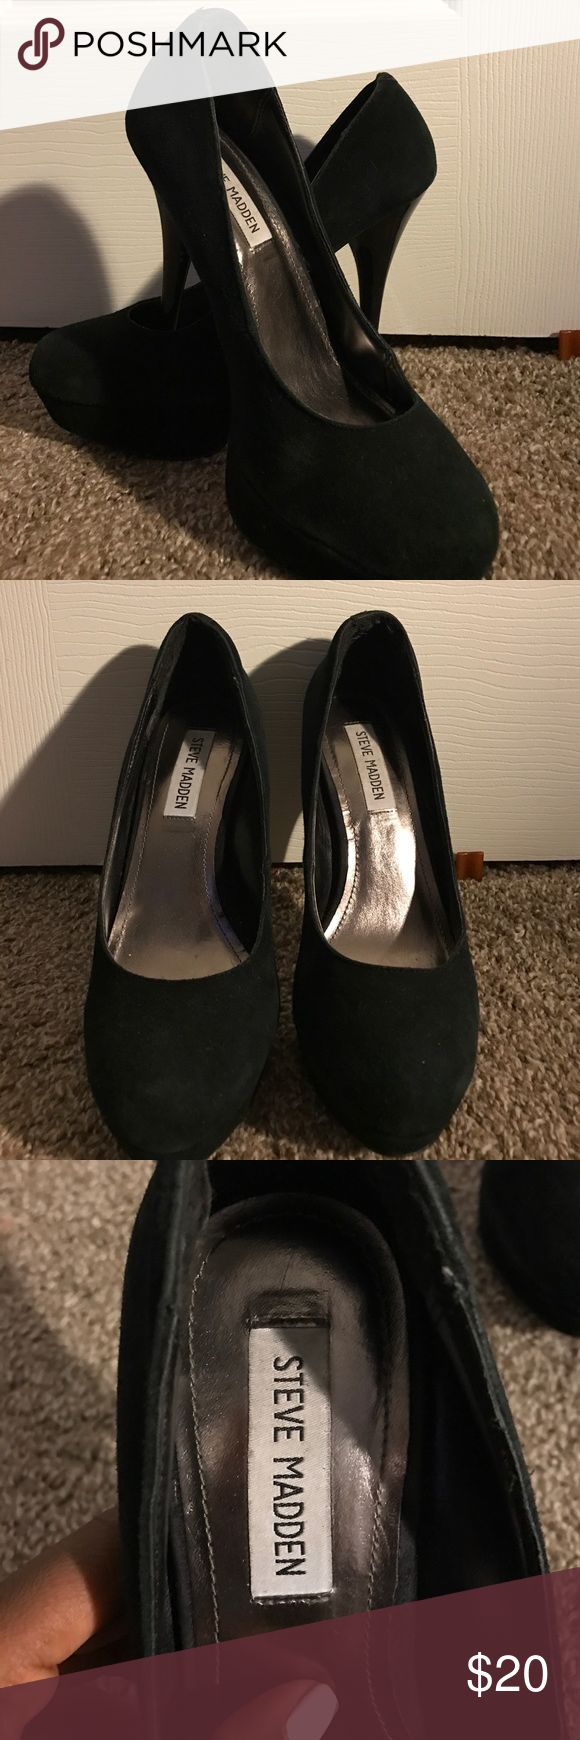 Steve Madden black pumps Steve Madden suede black pumps, very comfortable, pre-loved, signs of wear but good condition. Perfect to dress up or dress down. Easy to walk in & already broken in!!!!! I hate to part with these, but I never get to wear them & it's time to let go 😿. Steve Madden Shoes Heels